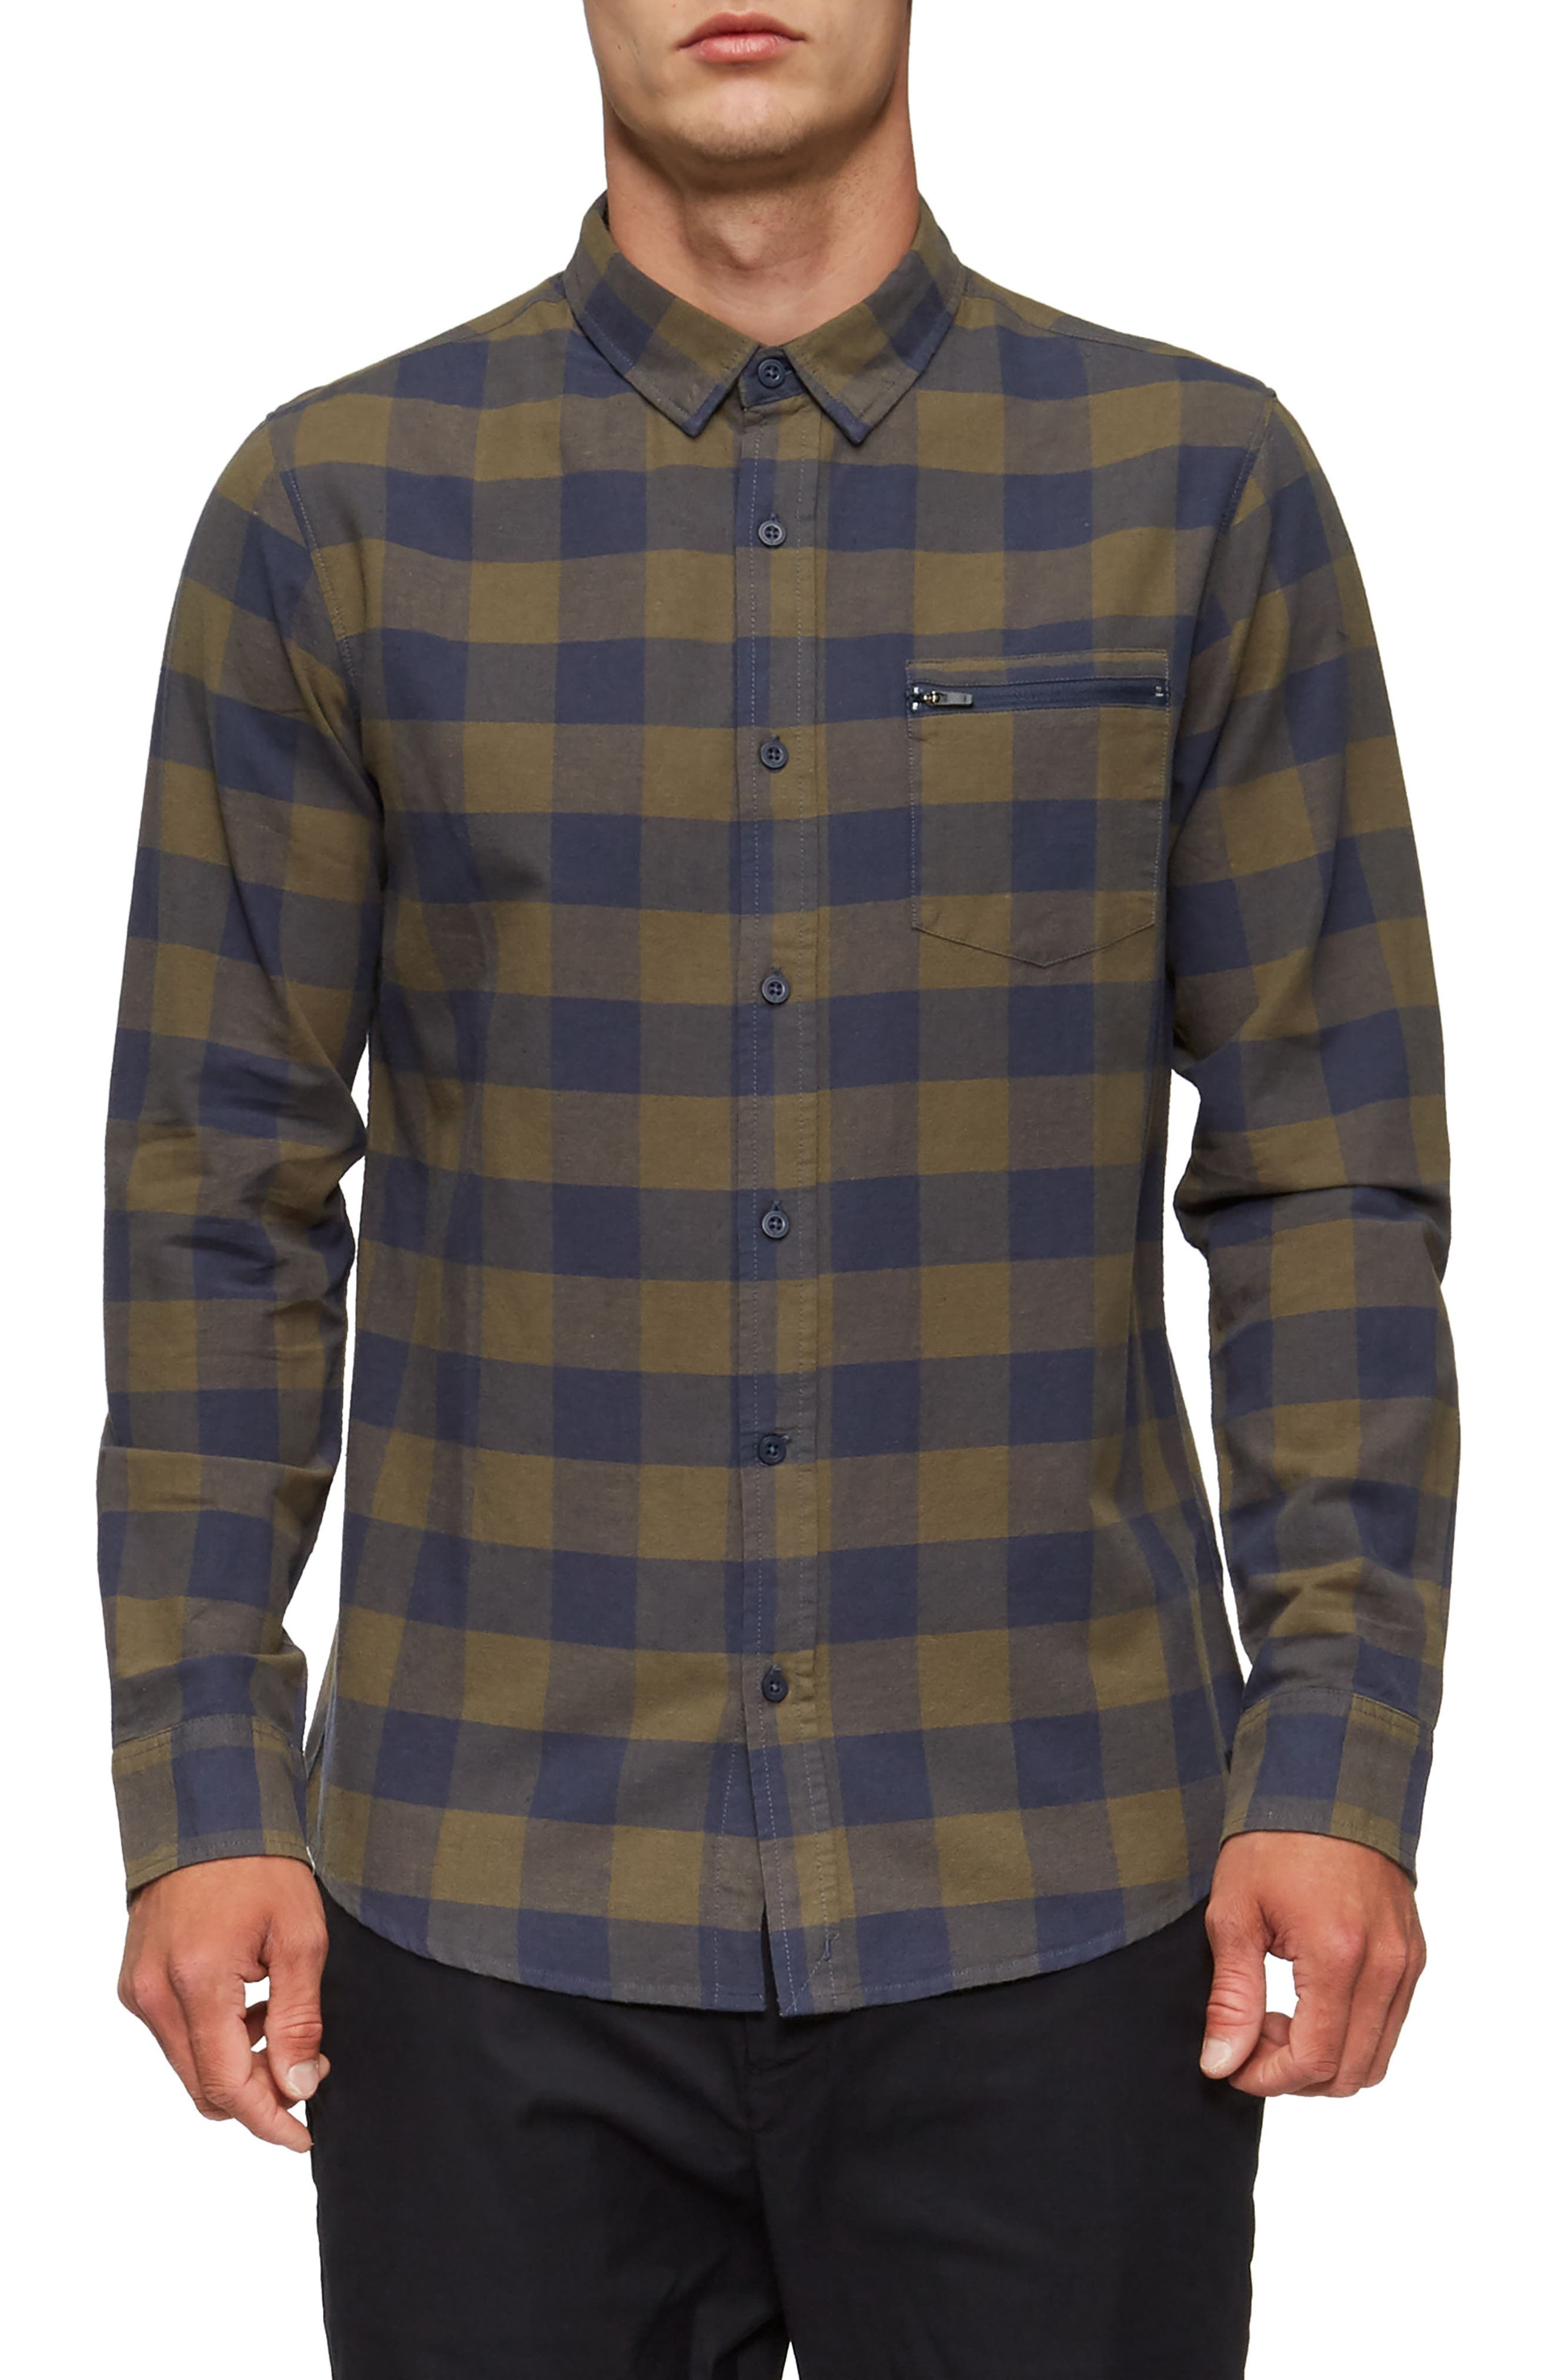 Cohen Long-Sleeve Shirt,                         Main,                         color, Shadow Blue/ Olive